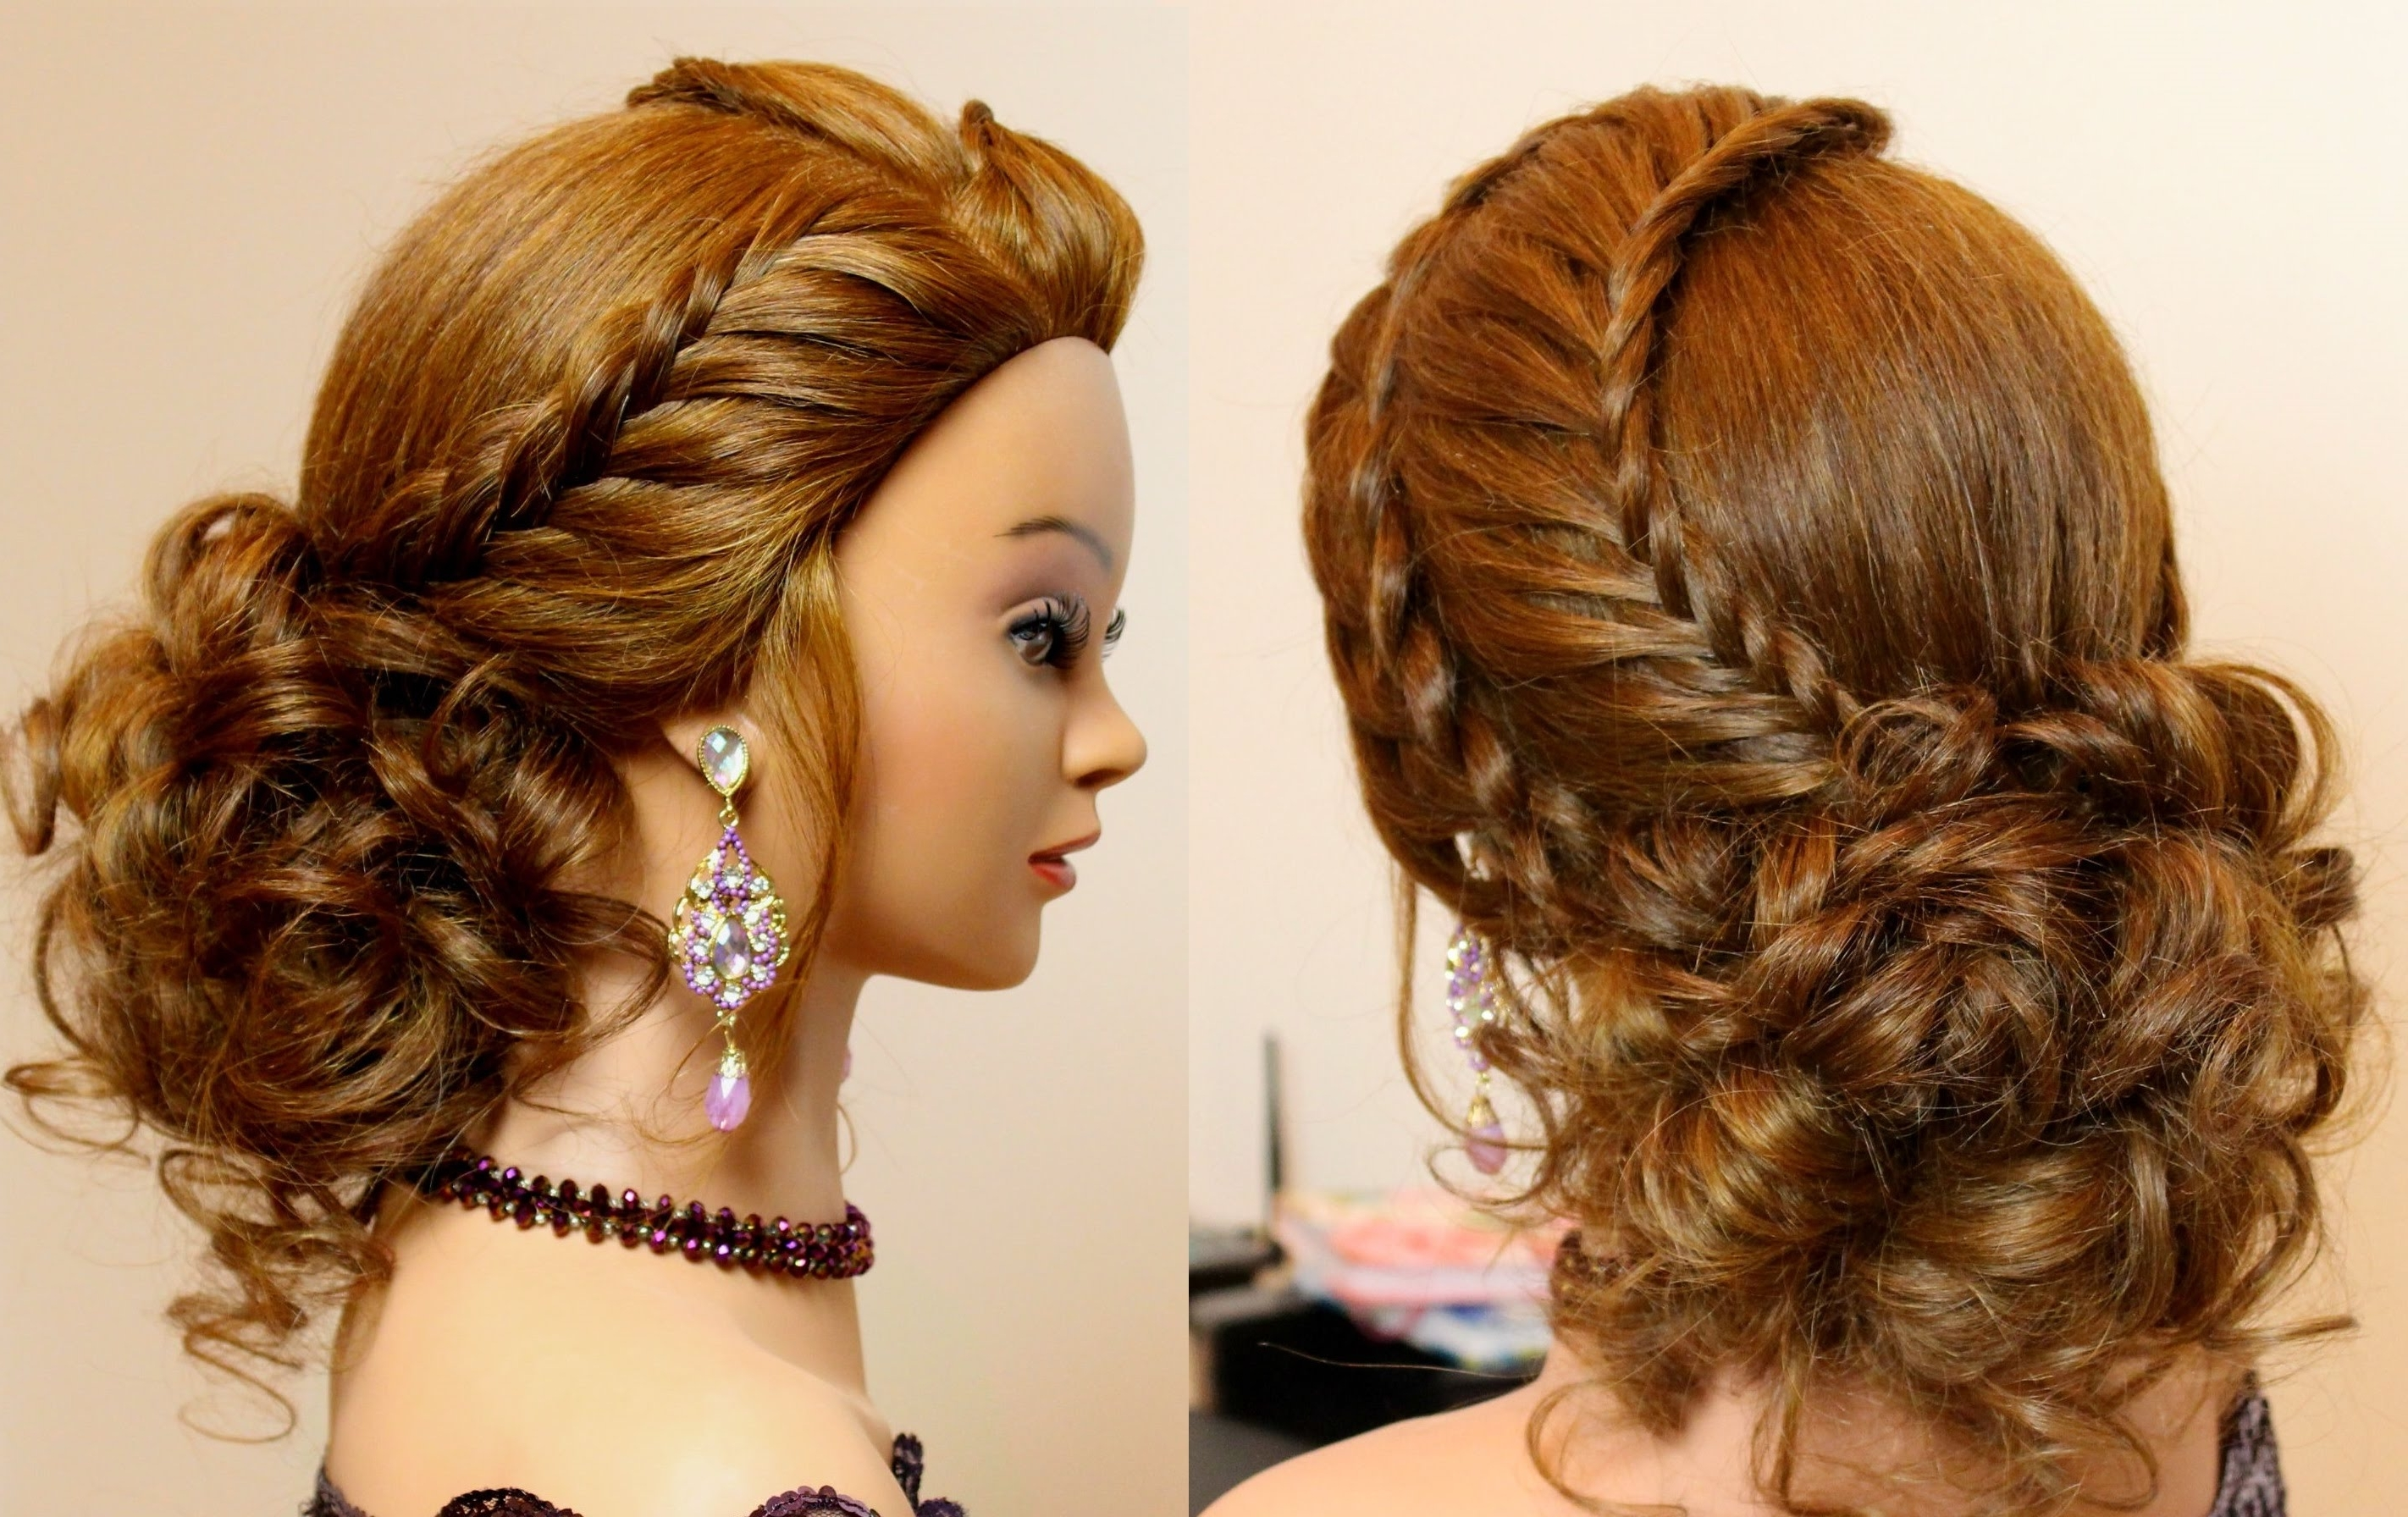 Photo Gallery Of Long Hair Updo Hairstyles For Wedding Viewing 5 Of